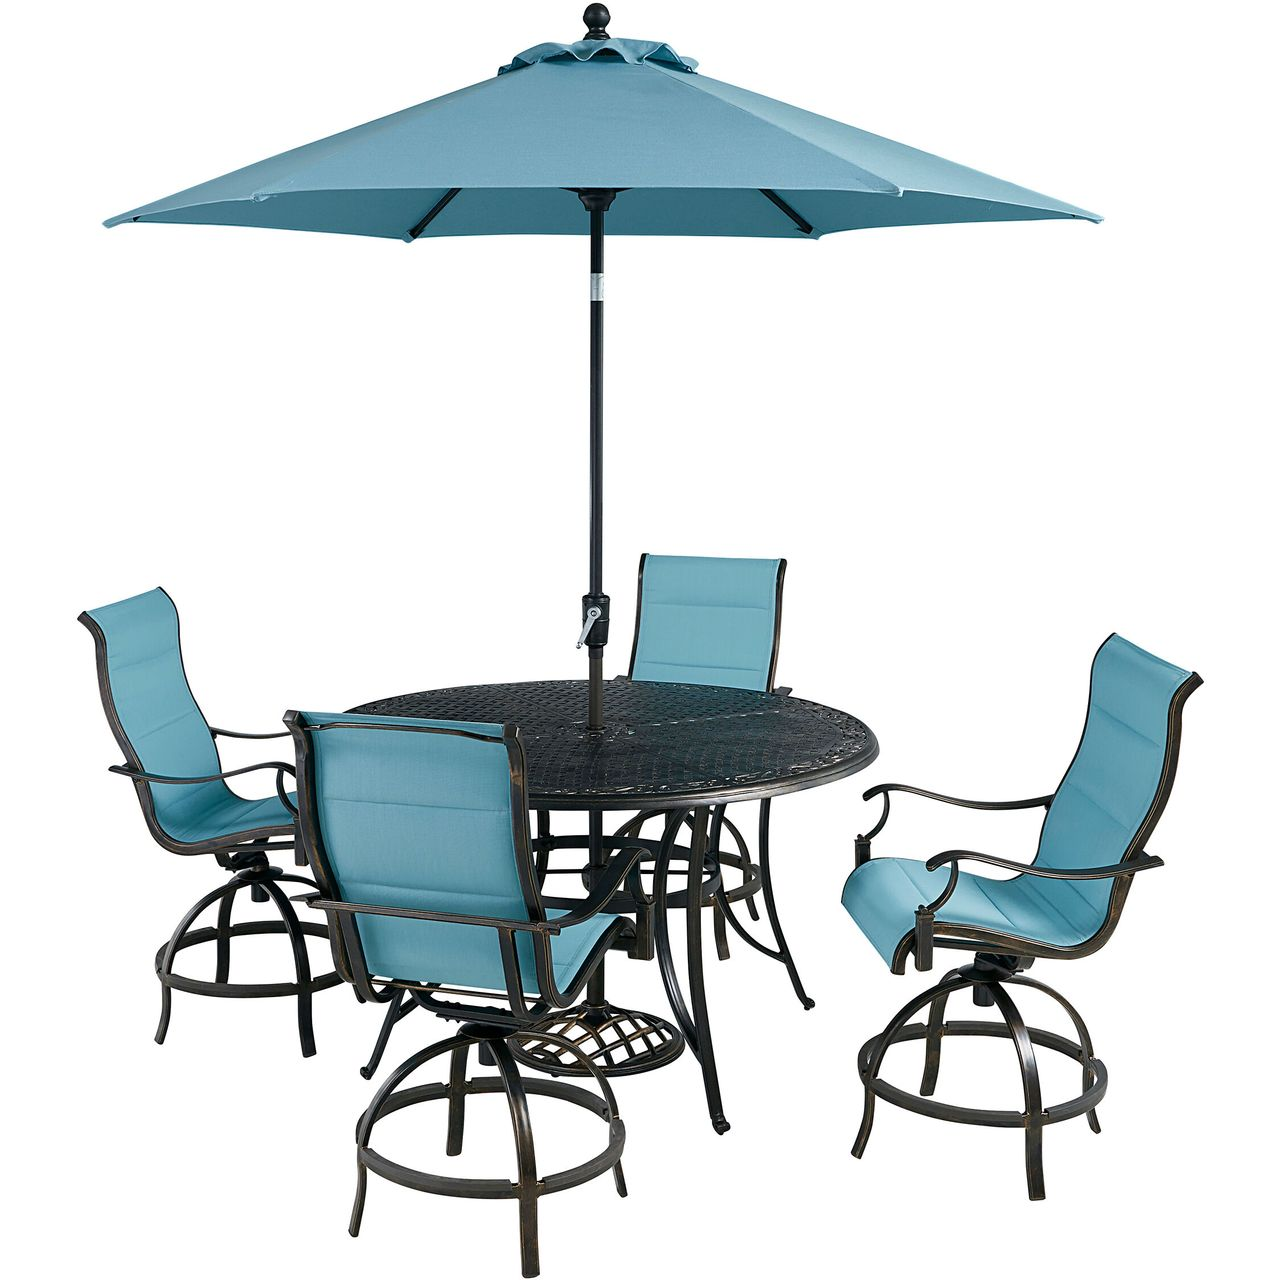 """Hanover Traditions 5-Pc 56"""" High-Dining Set With Blue Chairs/Umbrella"""